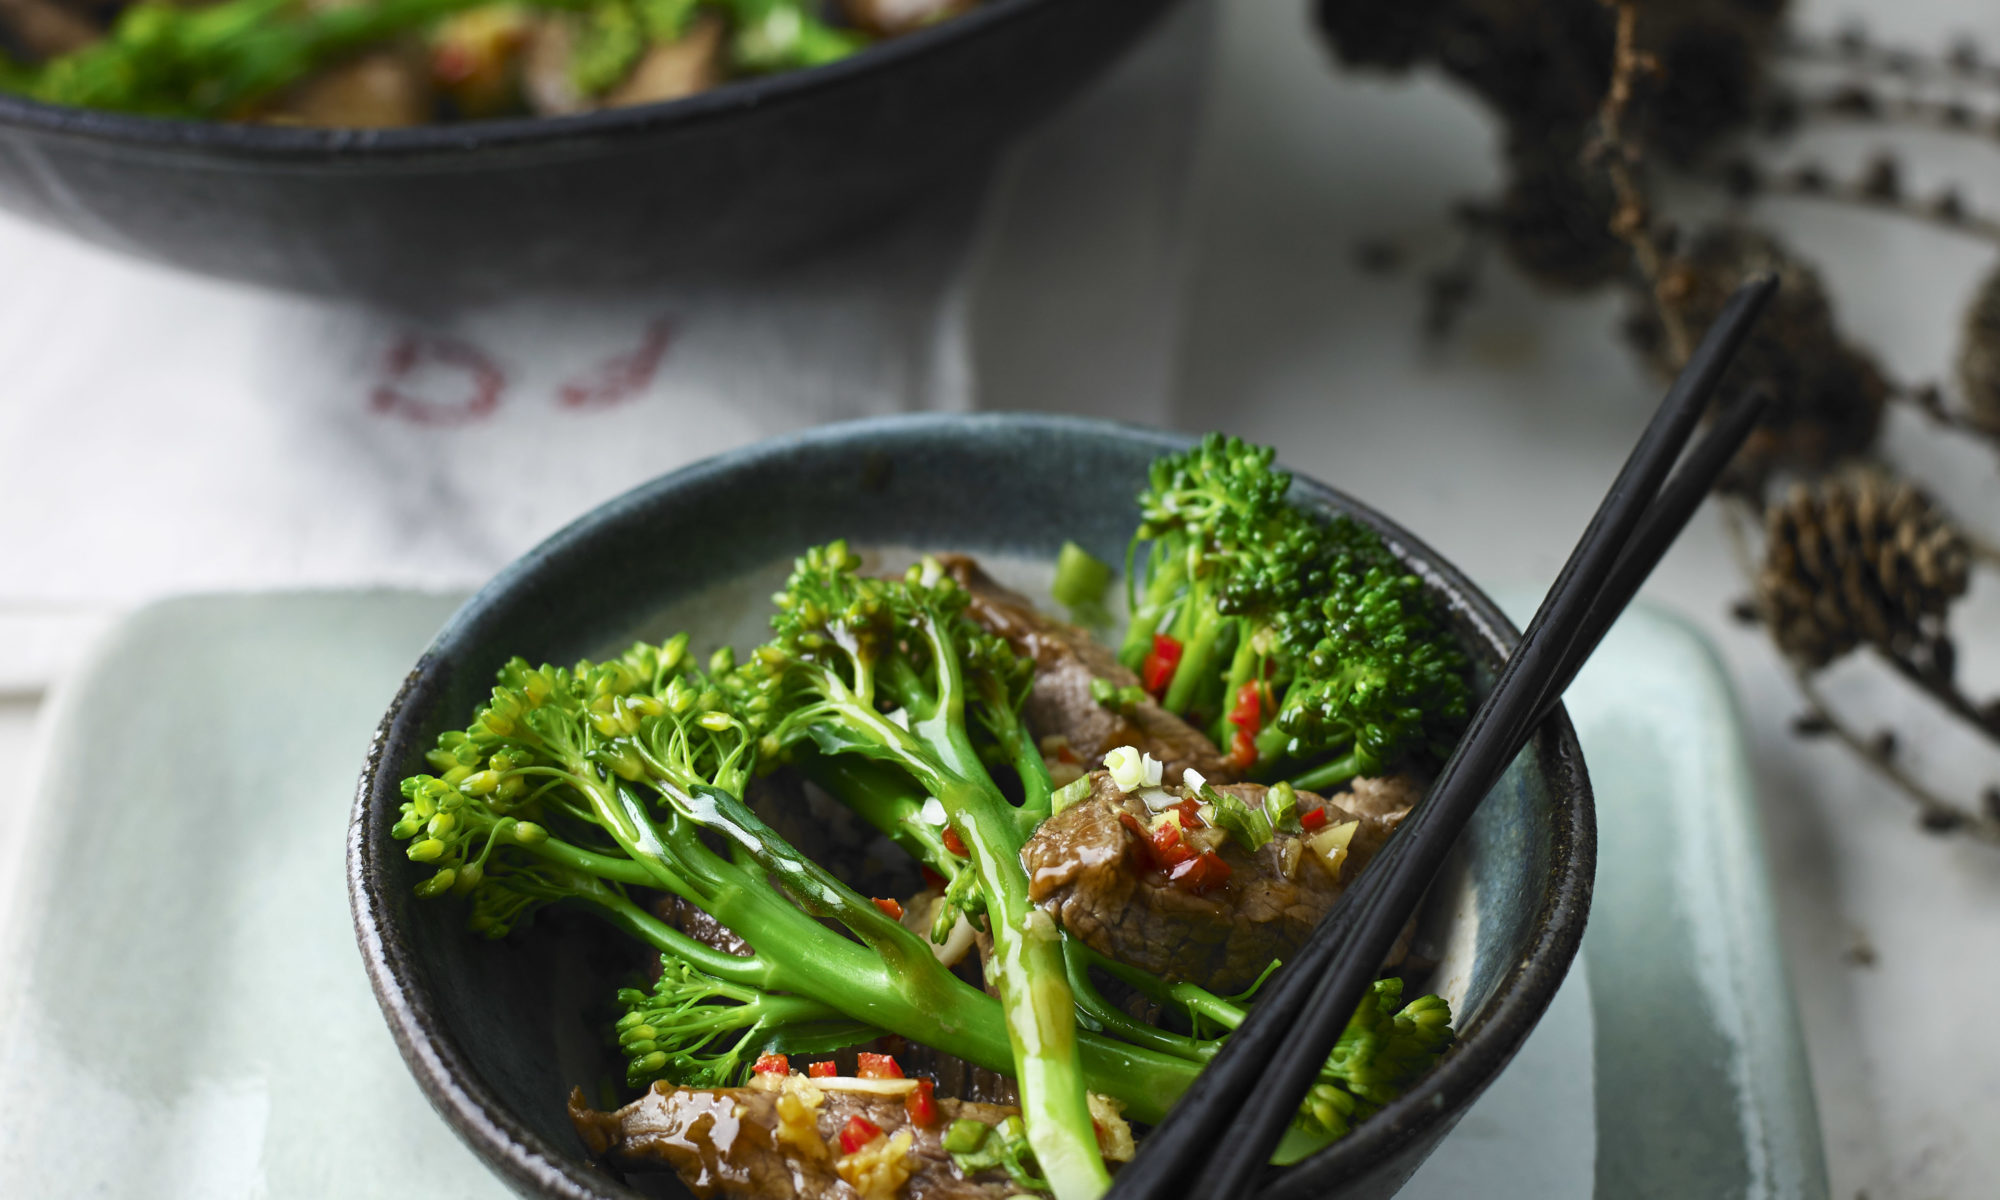 Beef & broccoli in oyster sauce in black dish with chopsticks.